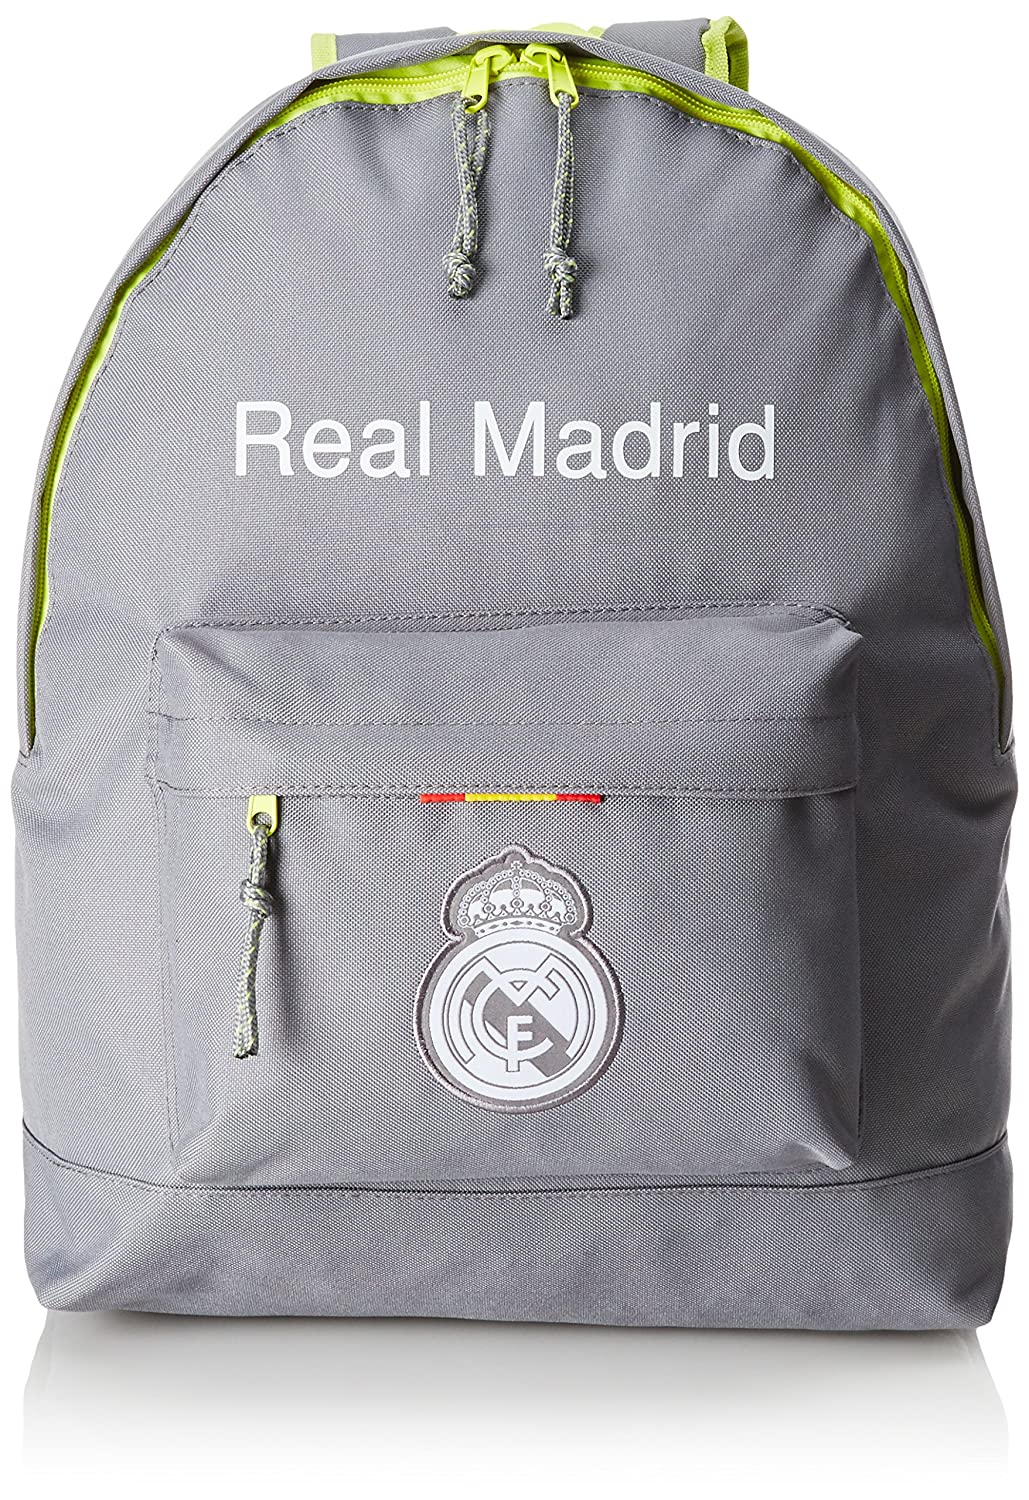 076495 Real Madrid Mochila Tipo Casual, 20 litros, Color Gris